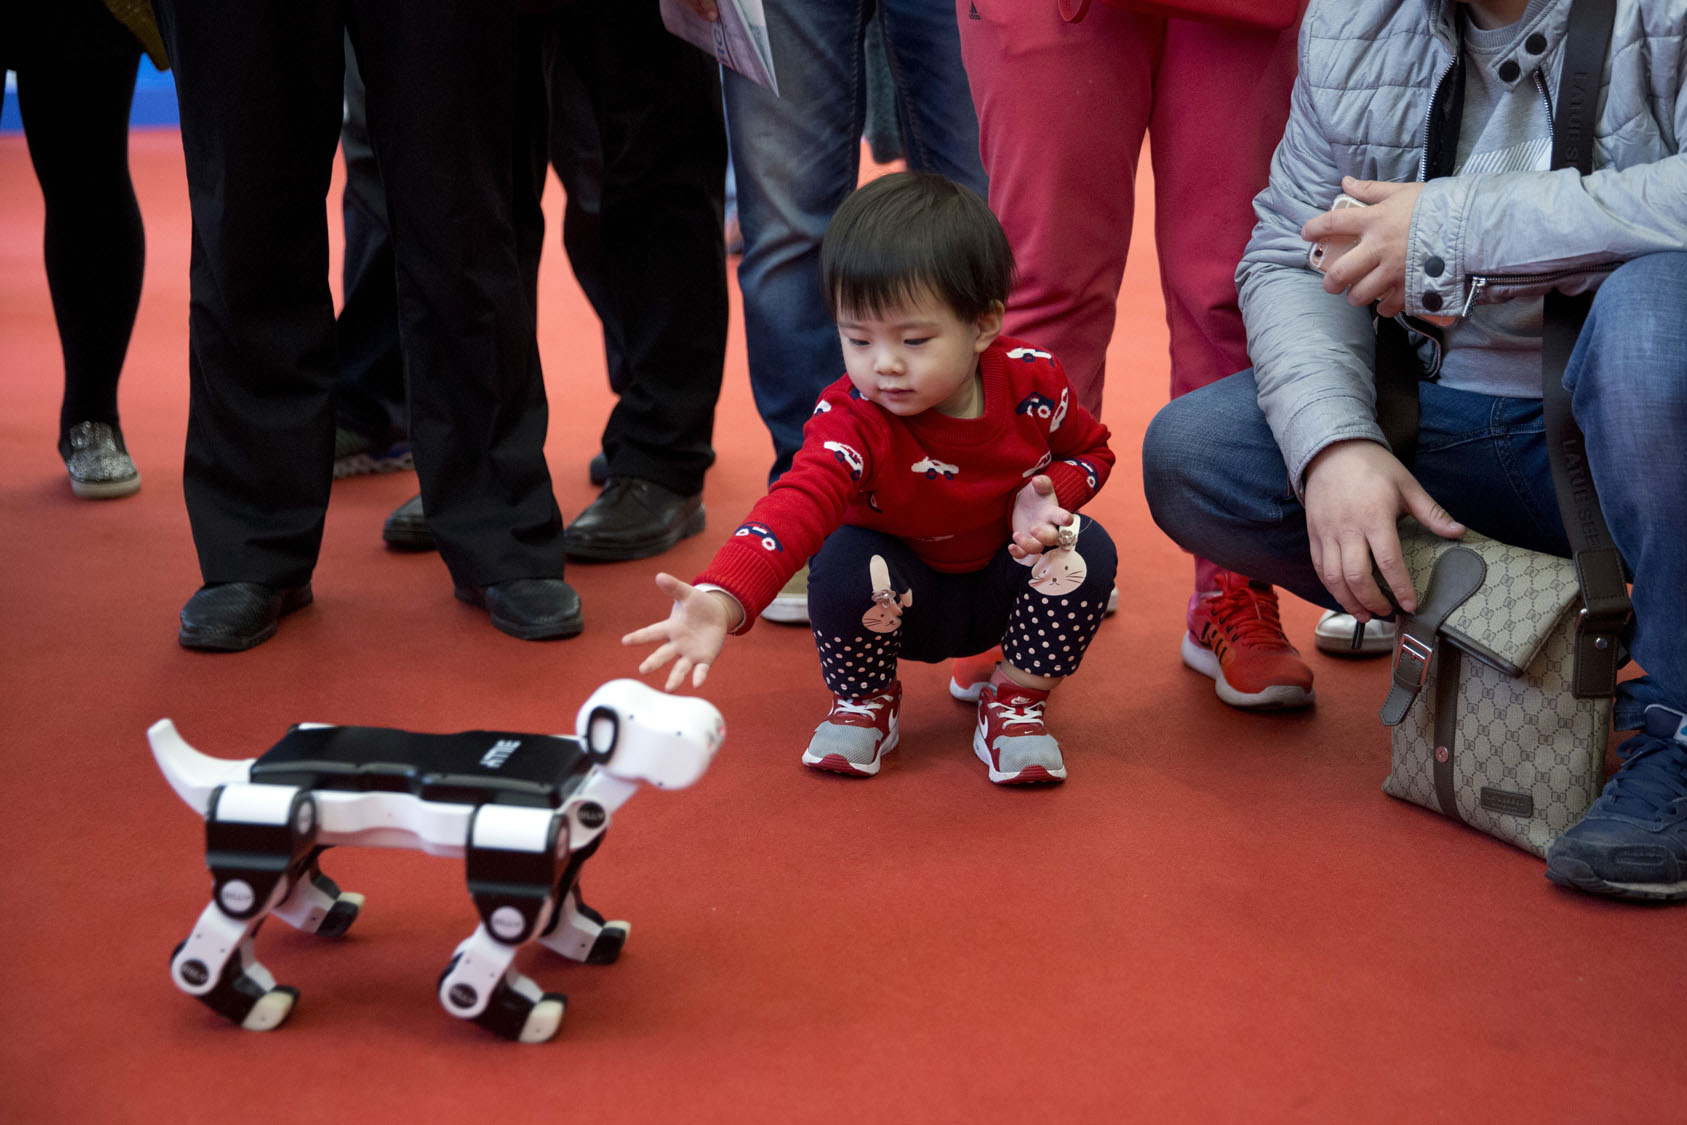 World Robot Conference in Beijing, China